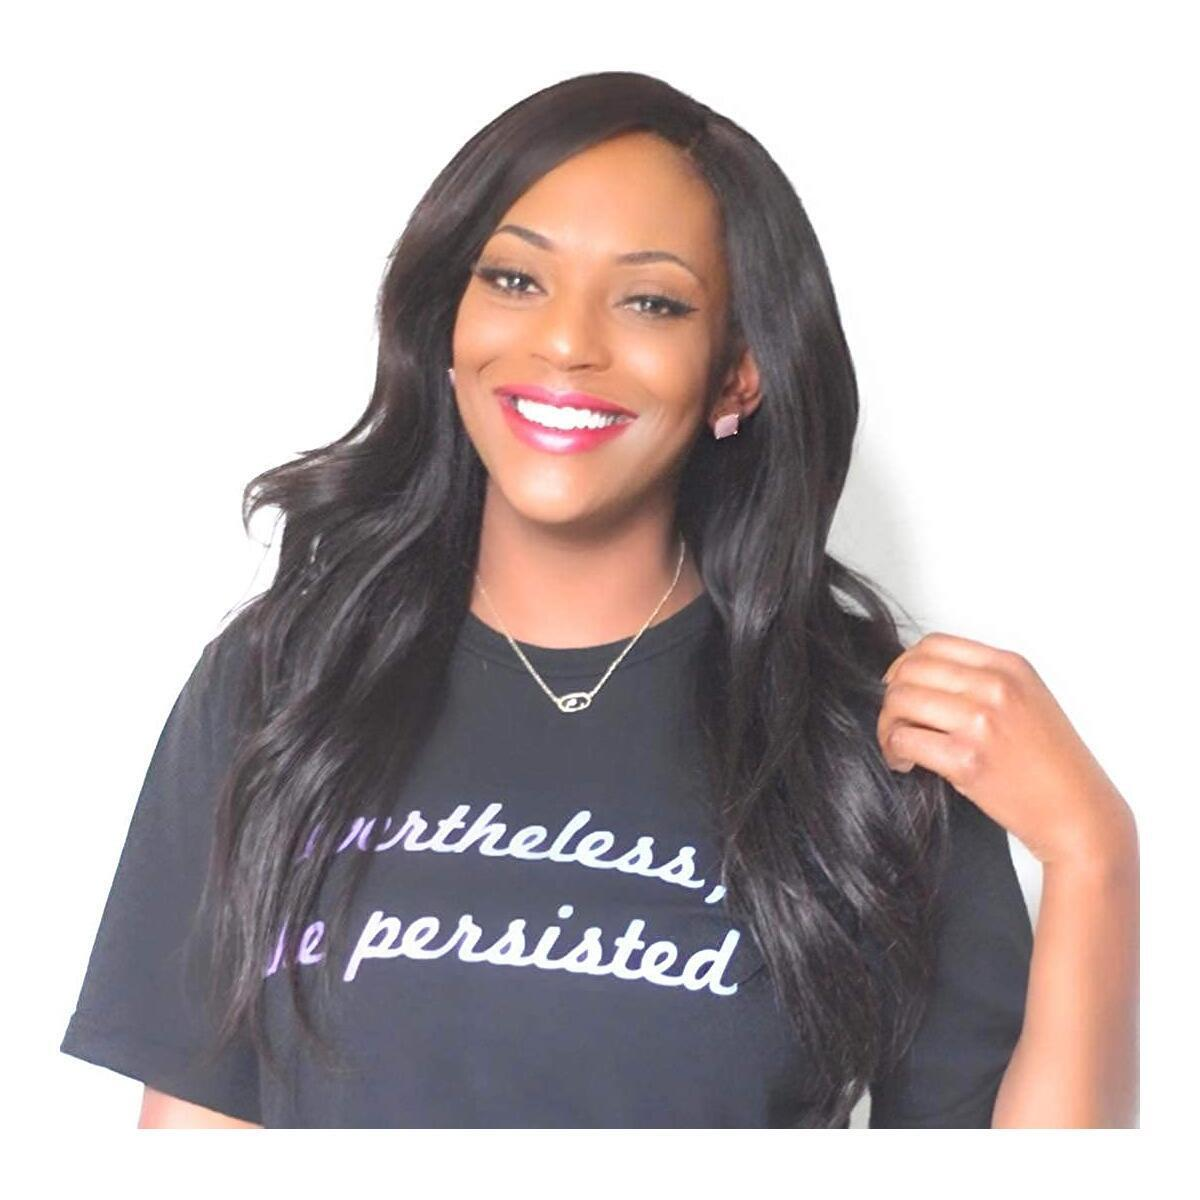 Nevertheless She Persisted Relaxed Fit Unisex Shirt (Size S-XL)